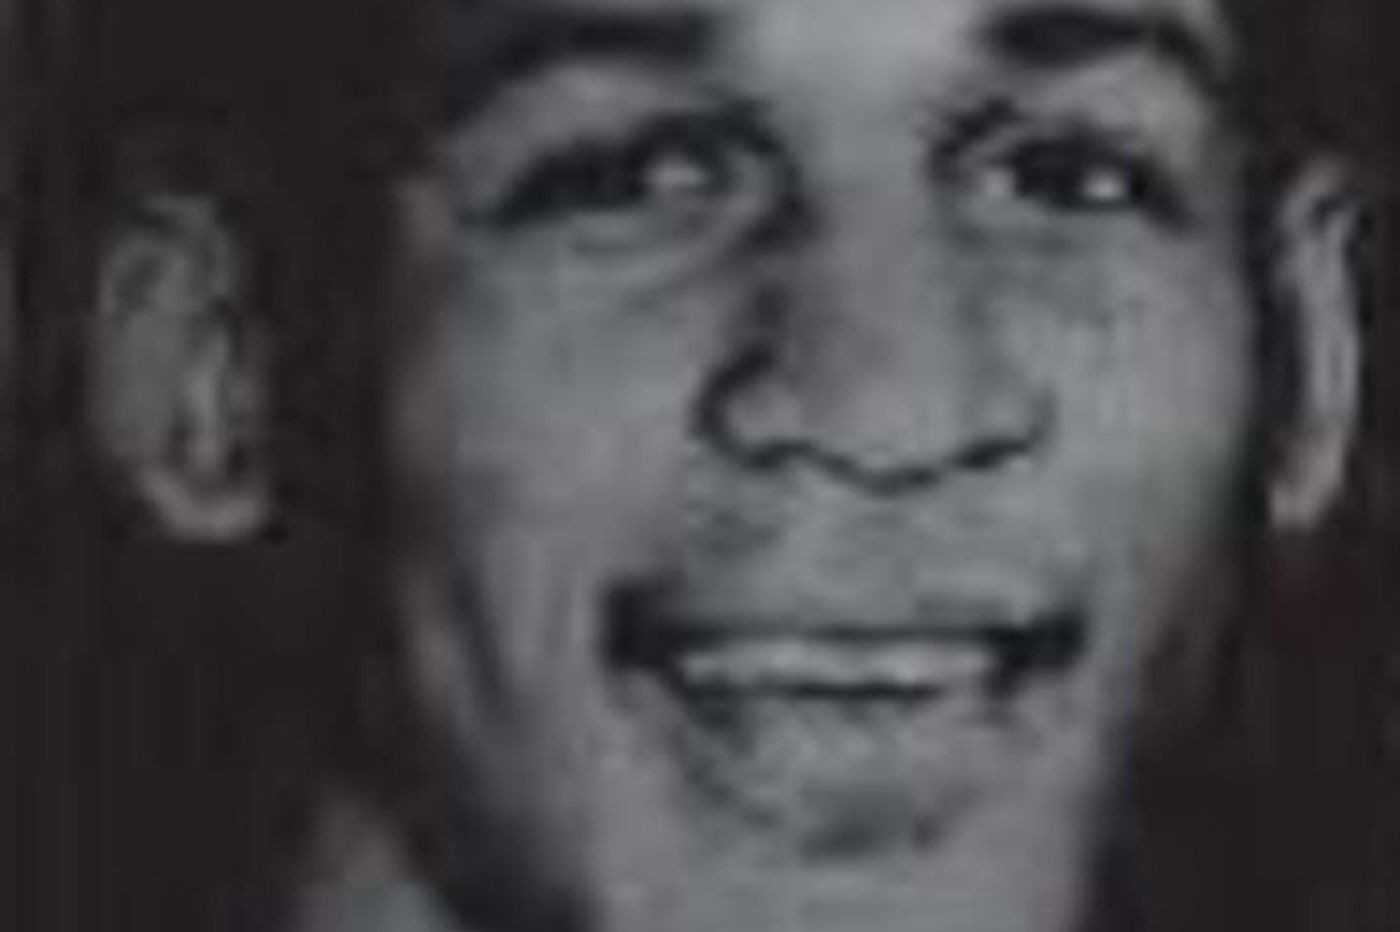 James A. McIntosh, 67, FBI agent who lectured athletes about drugs